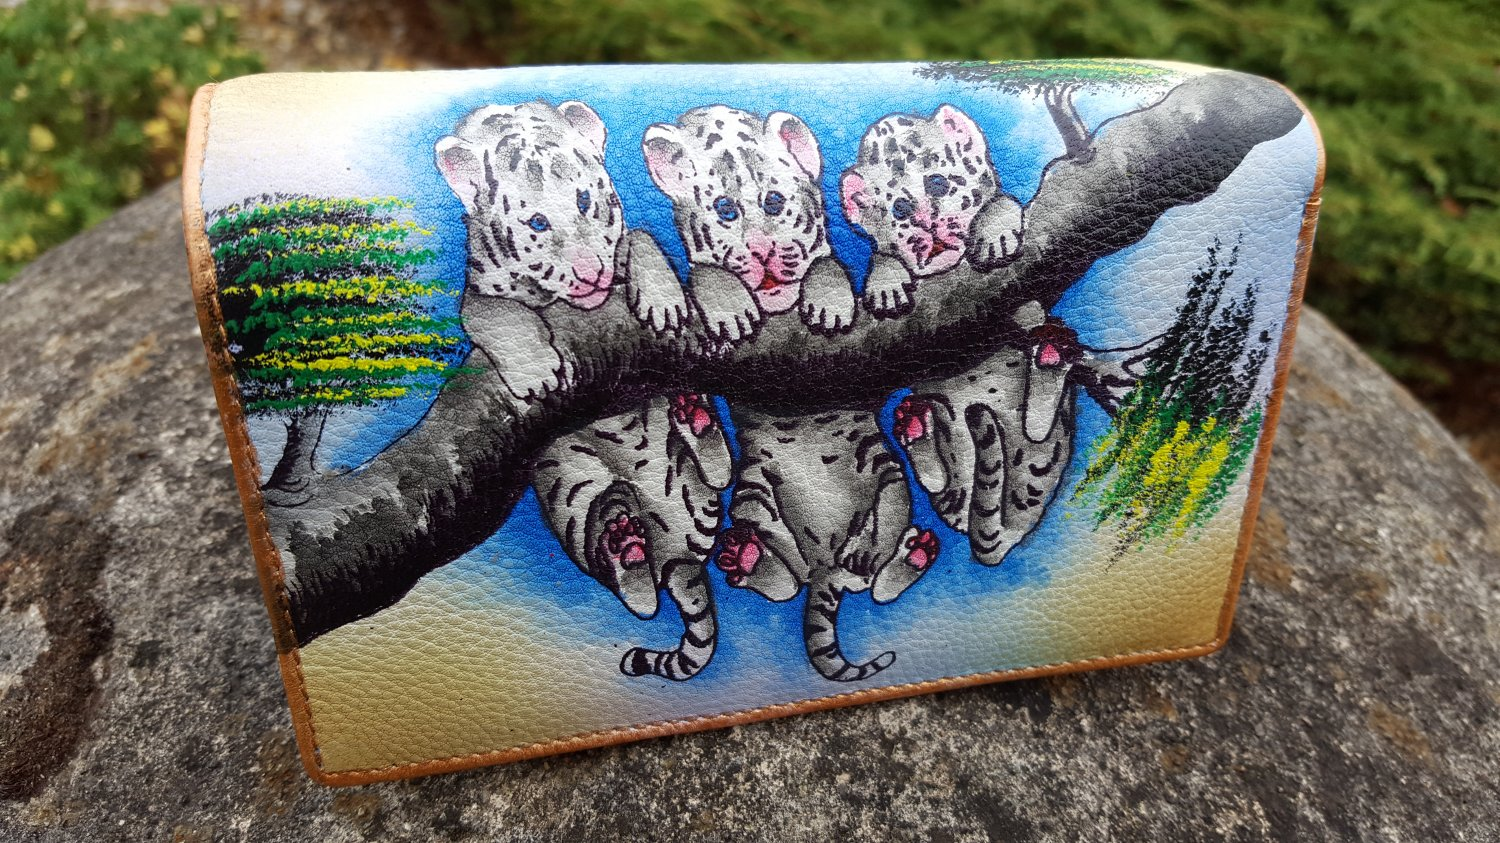 Genuine Leather Wallet french wallet, leather card organizer Large Womens Coin Purse Hand Painted